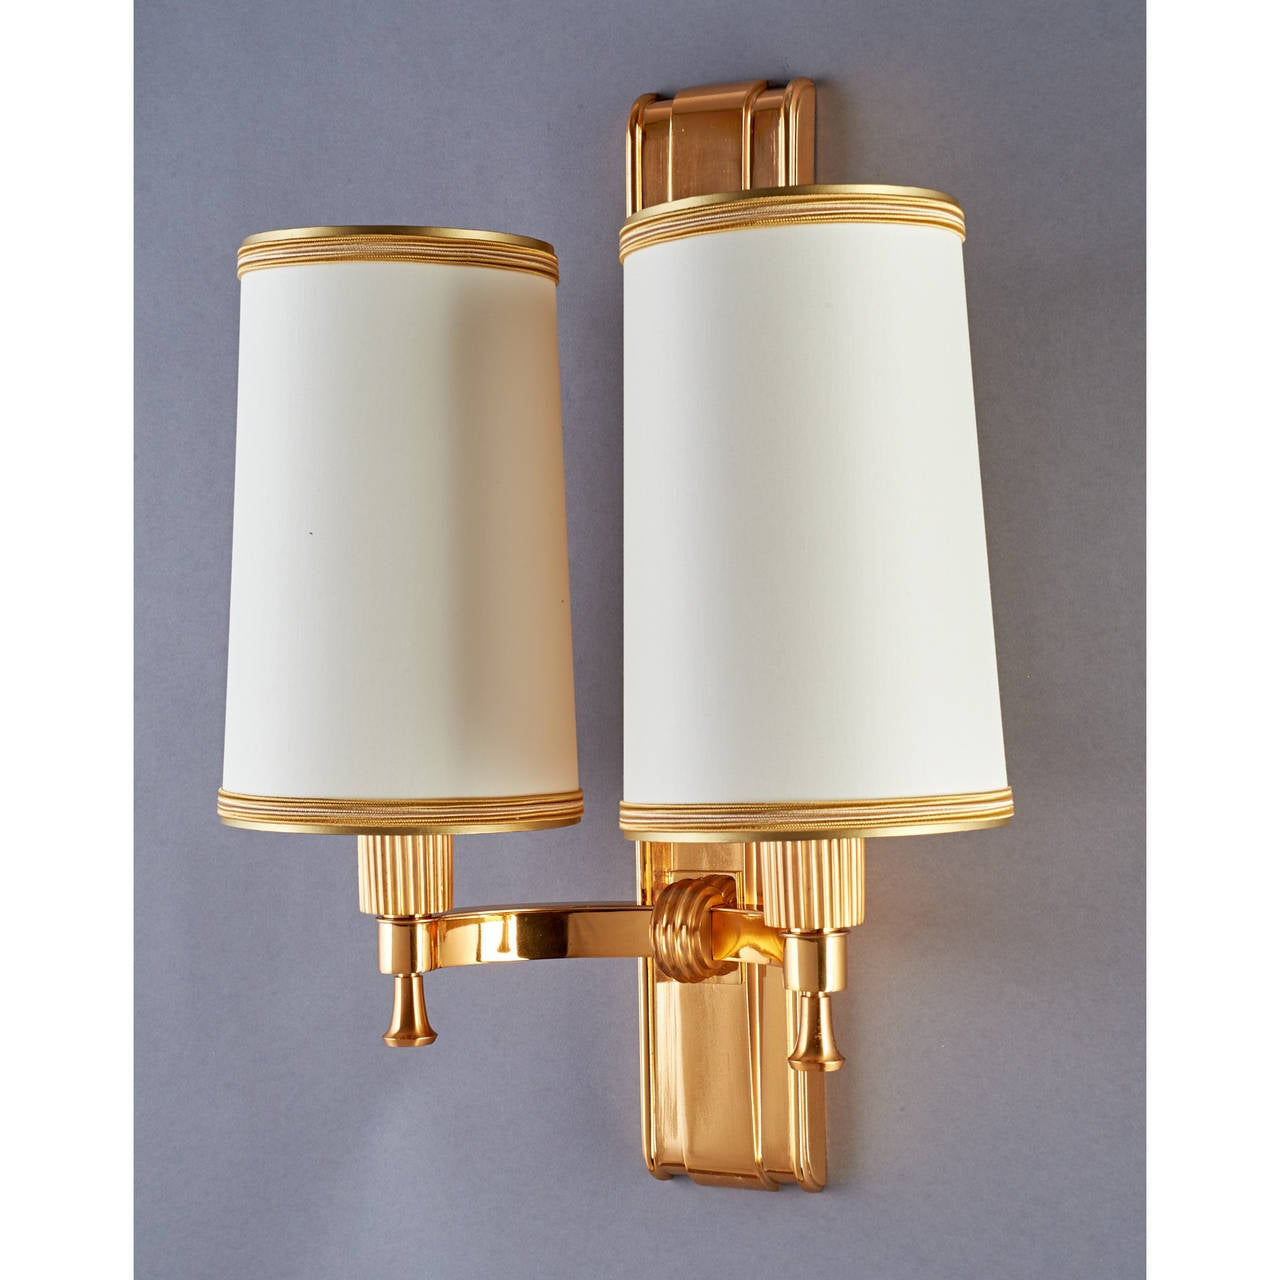 Elegant 1940's Bronze Sconces by Maxime Old 6